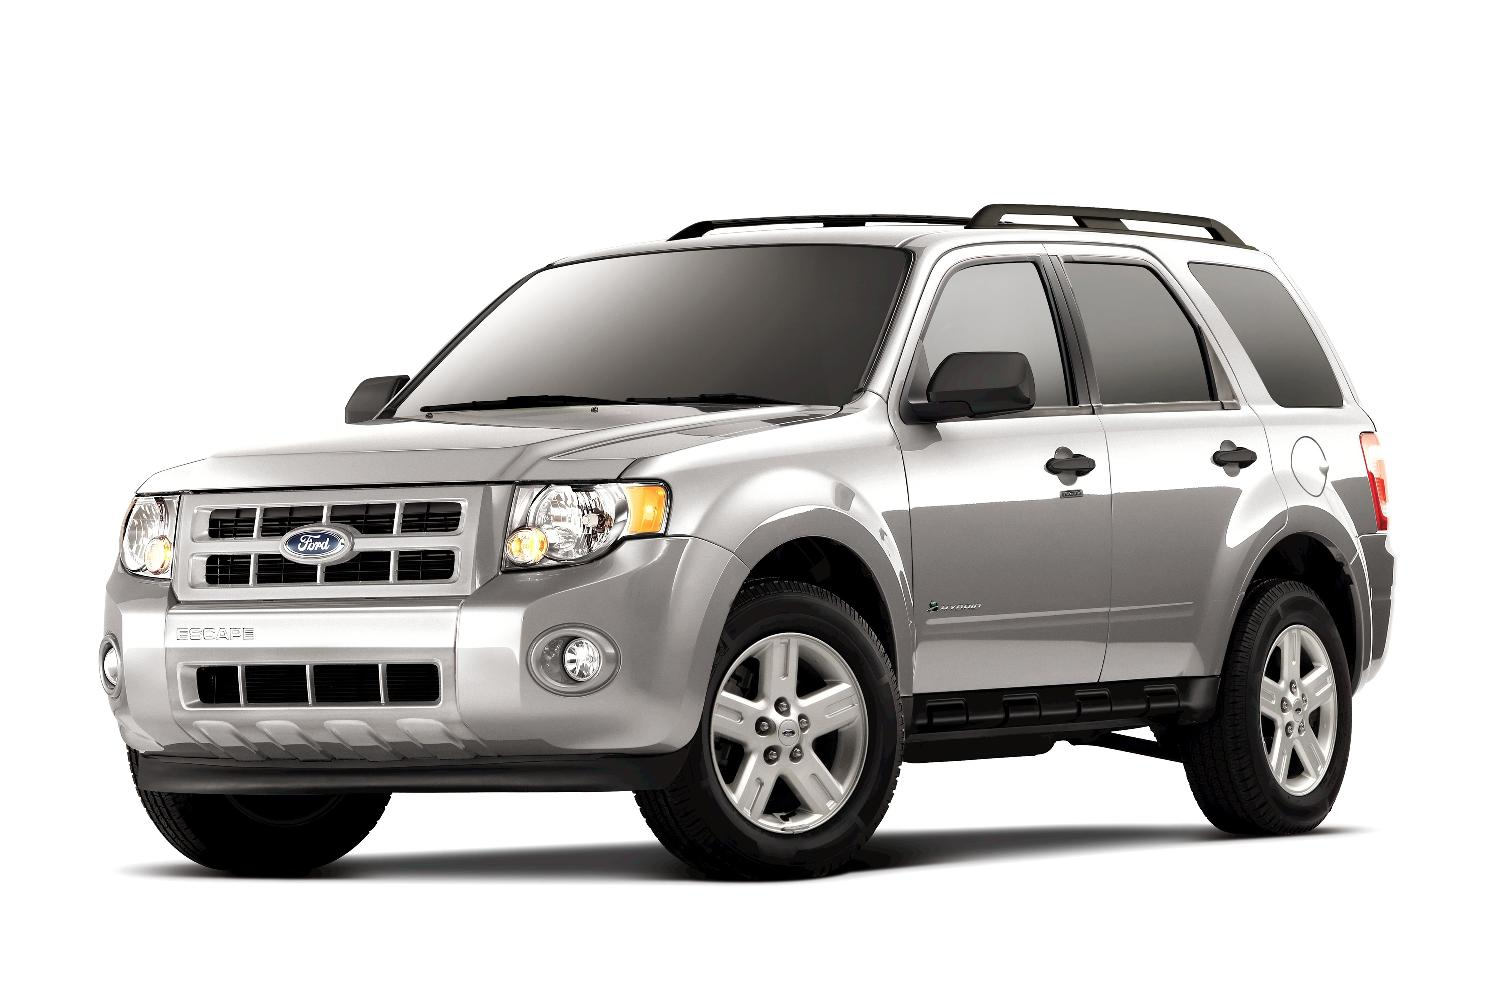 2011 2013 Ford Explorer Recalled For Steering Gear Glitch Fuse Box Diagram 2012 Prius Recalls 914000 Escape Suvs Power Issue